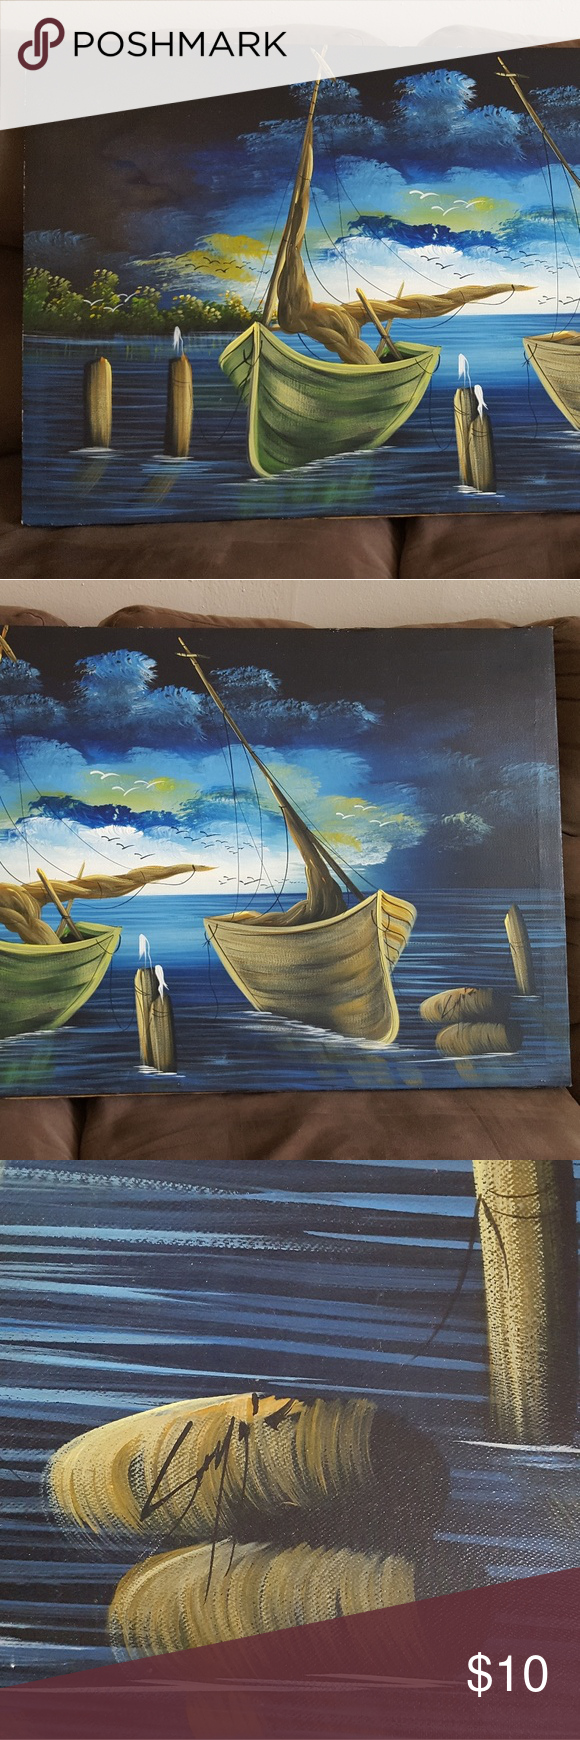 21.5×39 in. Boats painting In colors of blue, brown and yellow a beautiful painting of two boats. Other